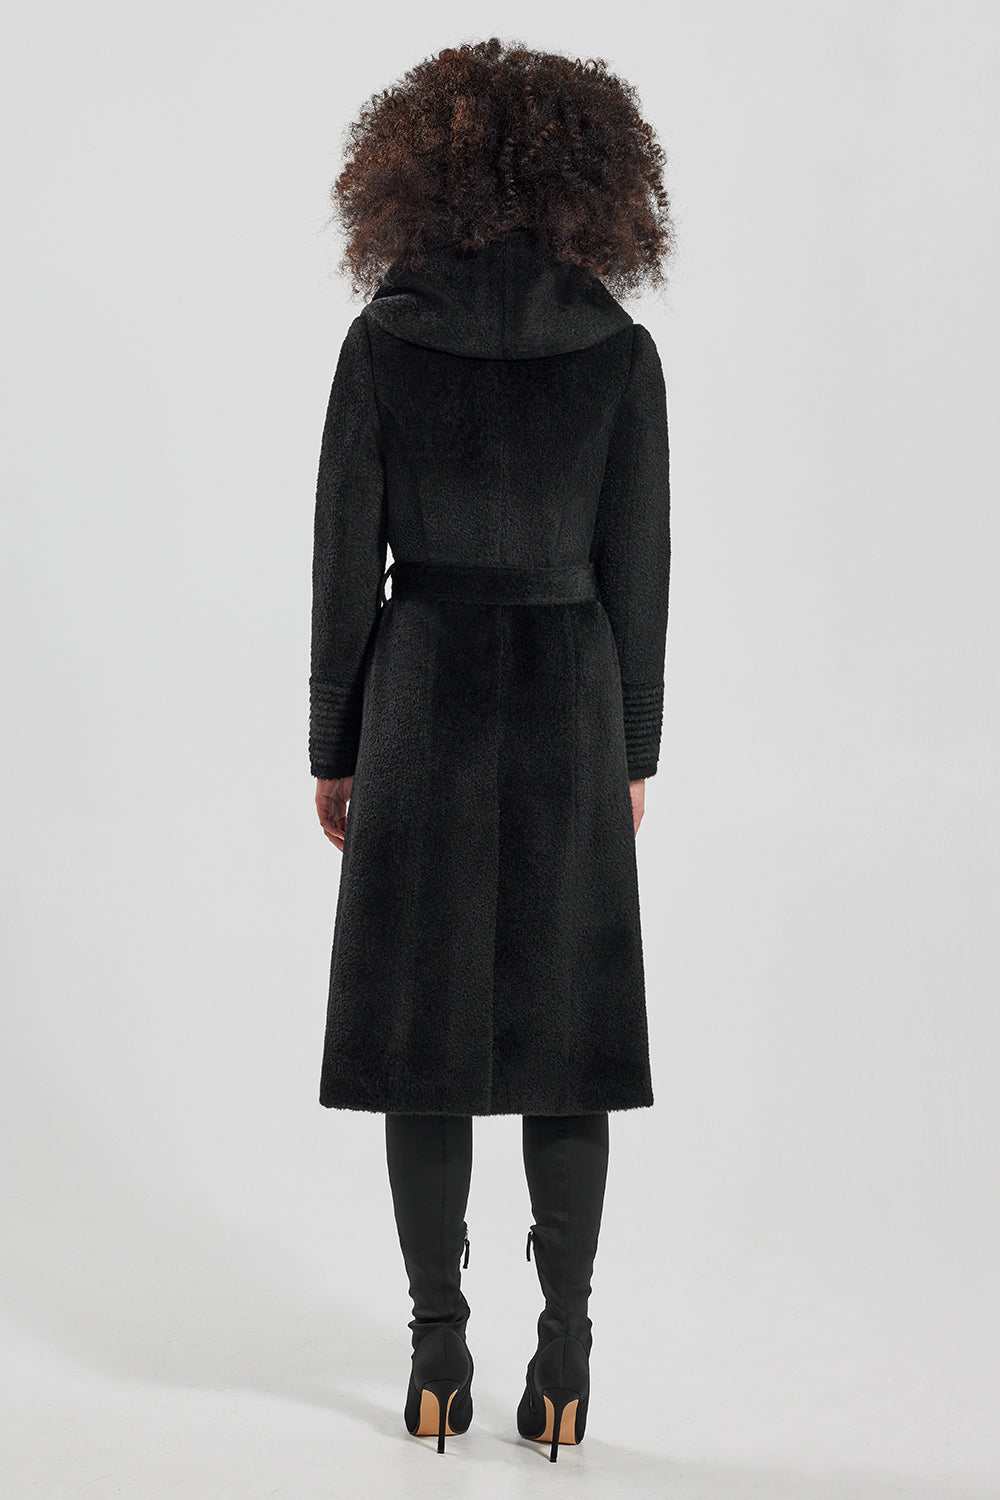 Sentaler Bouclé Alpaca Long Hooded Wrap Coat featured in Bouclé Alpaca and available in Black. Seen from back.